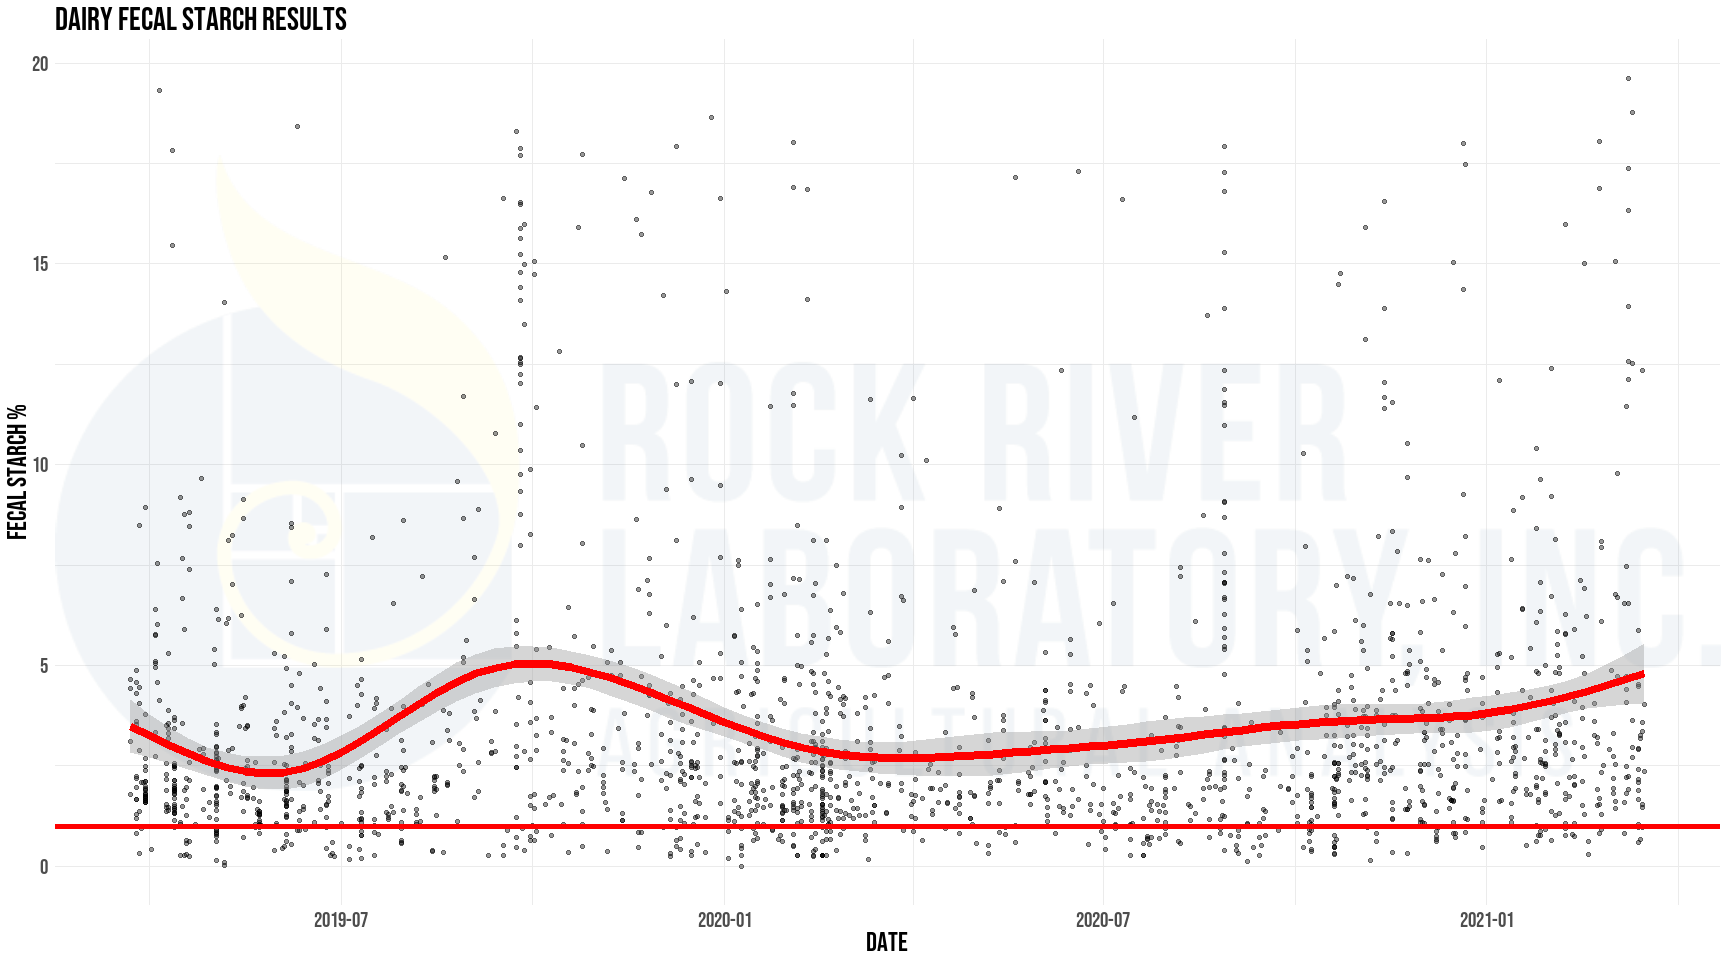 Dairy fecal starch results from Rock River Laboratory, plotted